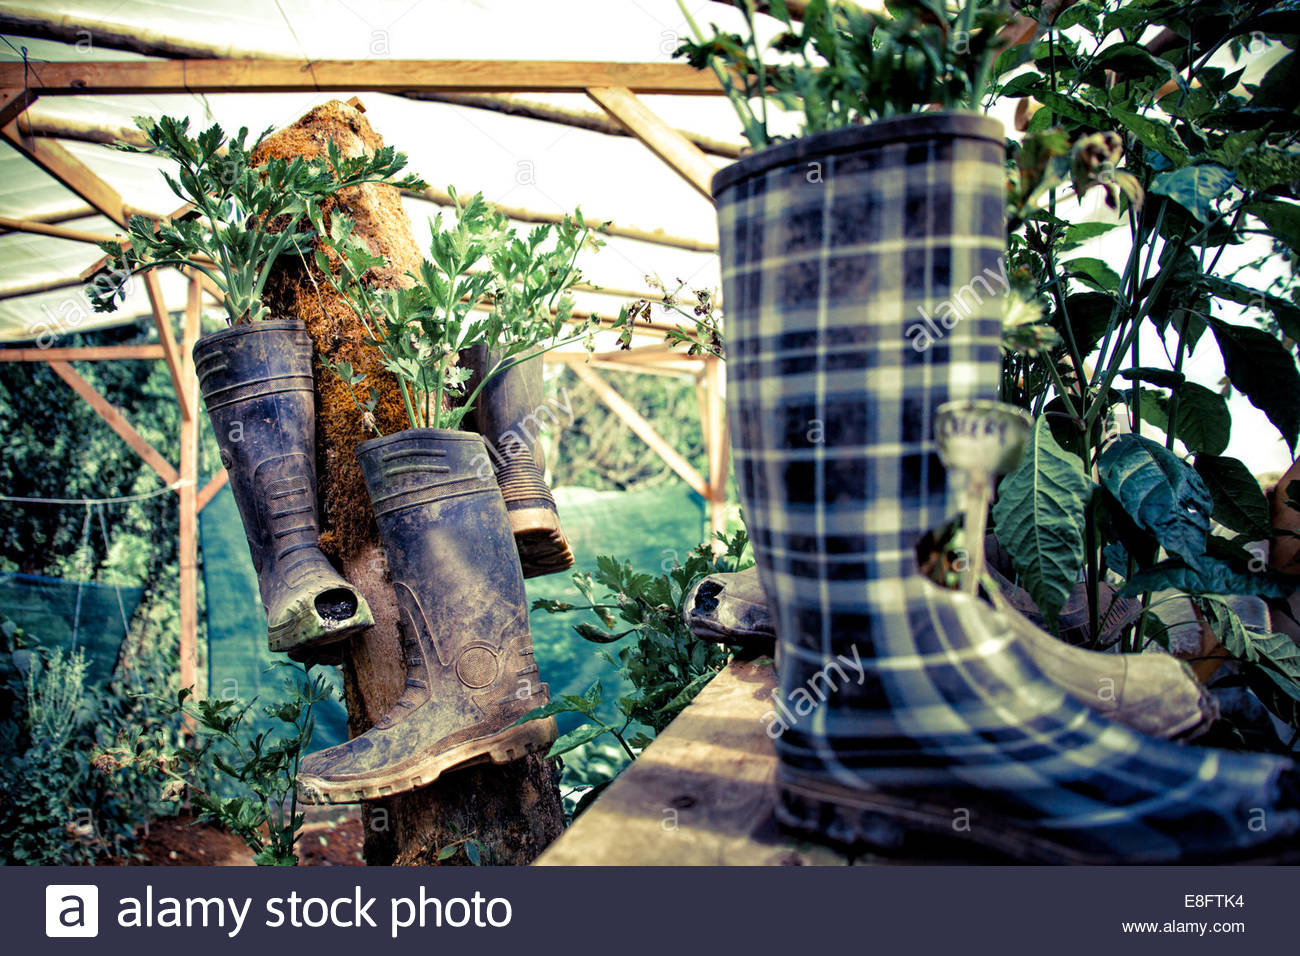 Vegetables growing in greenhouse in rubber boots, Costa Rica - Stock Image